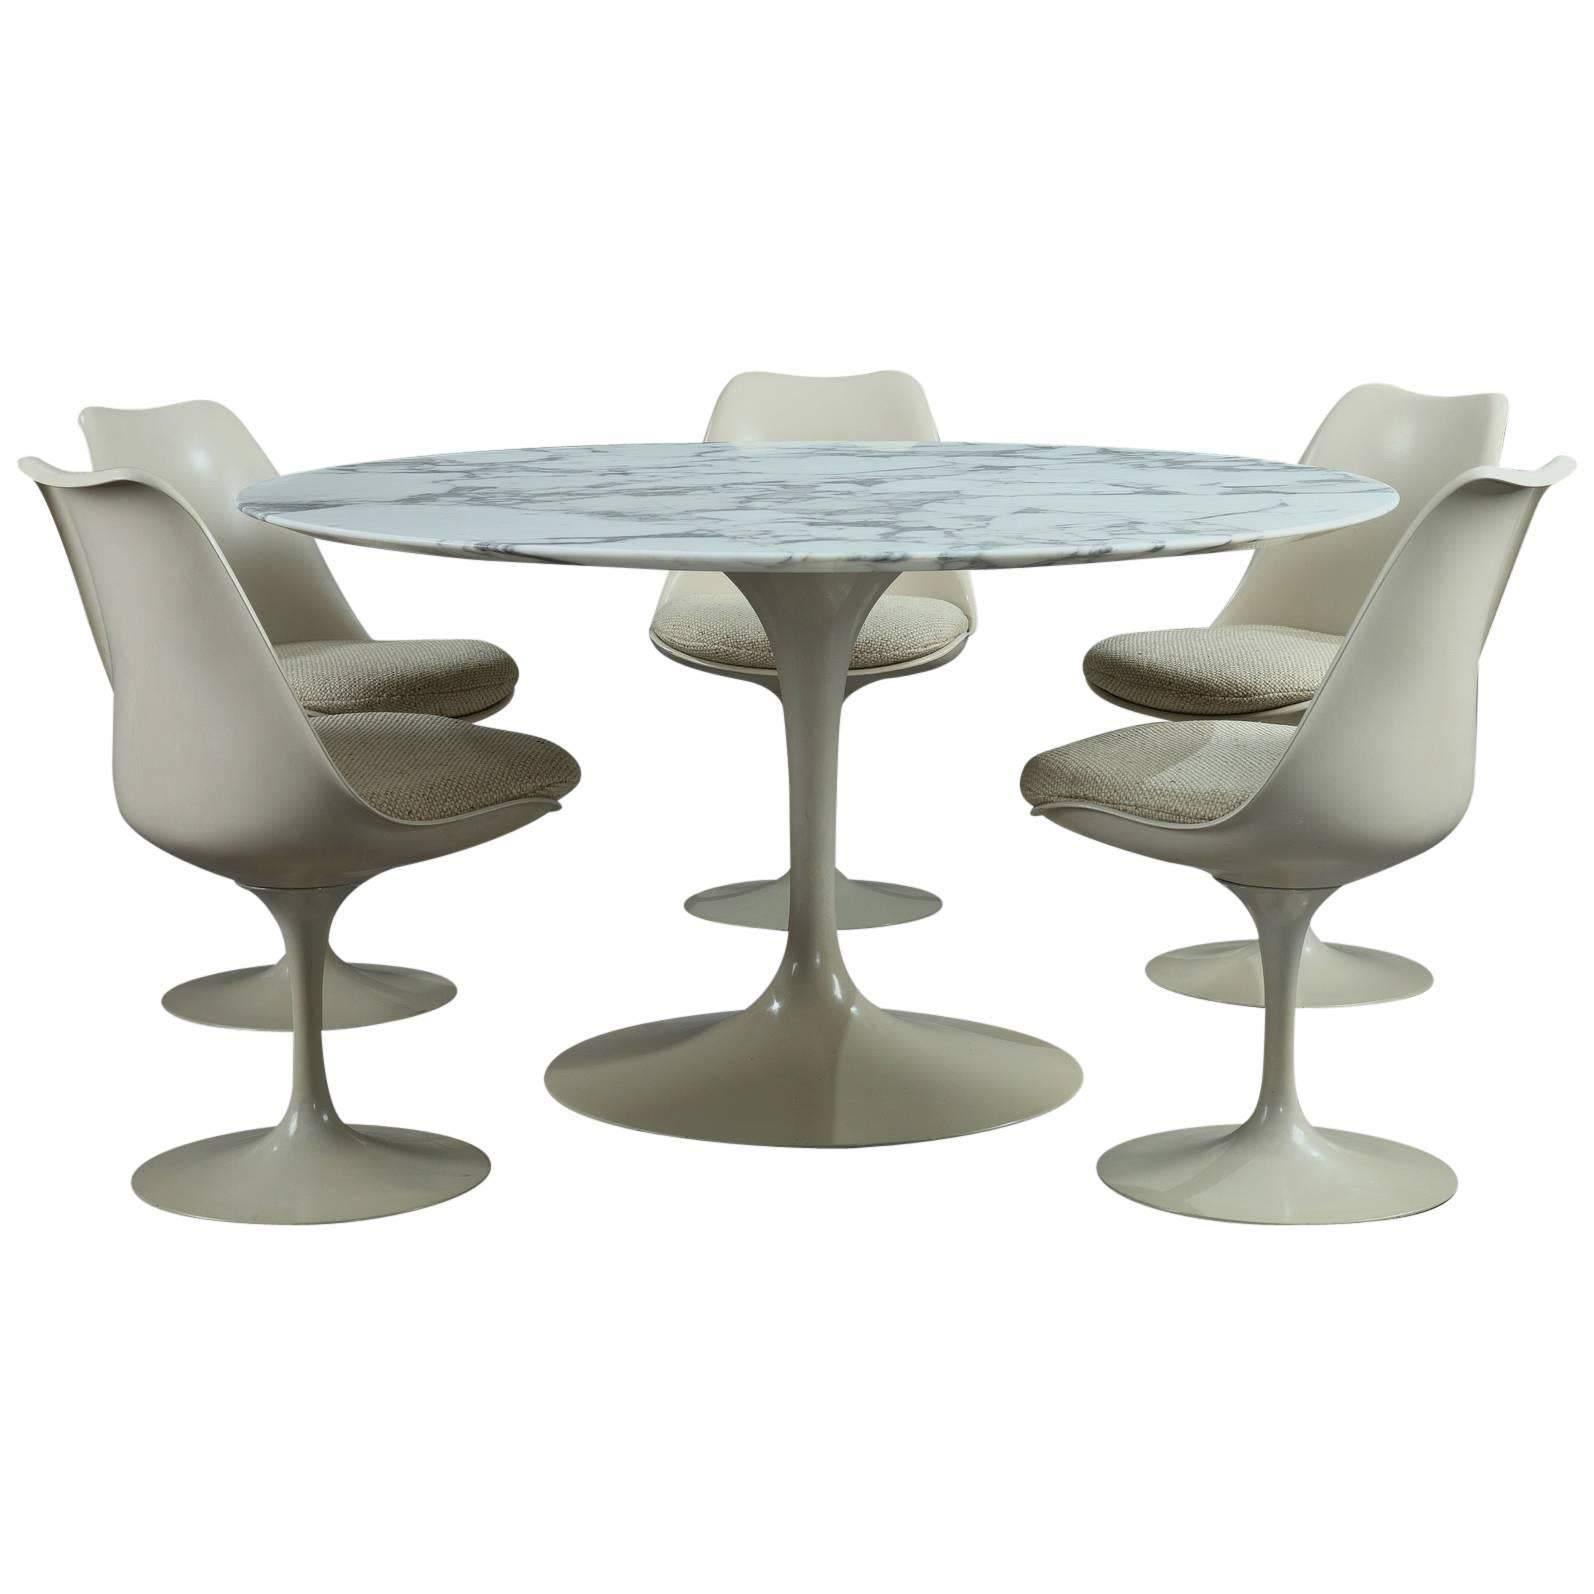 Tulip Dining Table And Set Of Five Tulip Seats By Eero Saarinen For Knoll  For Sale